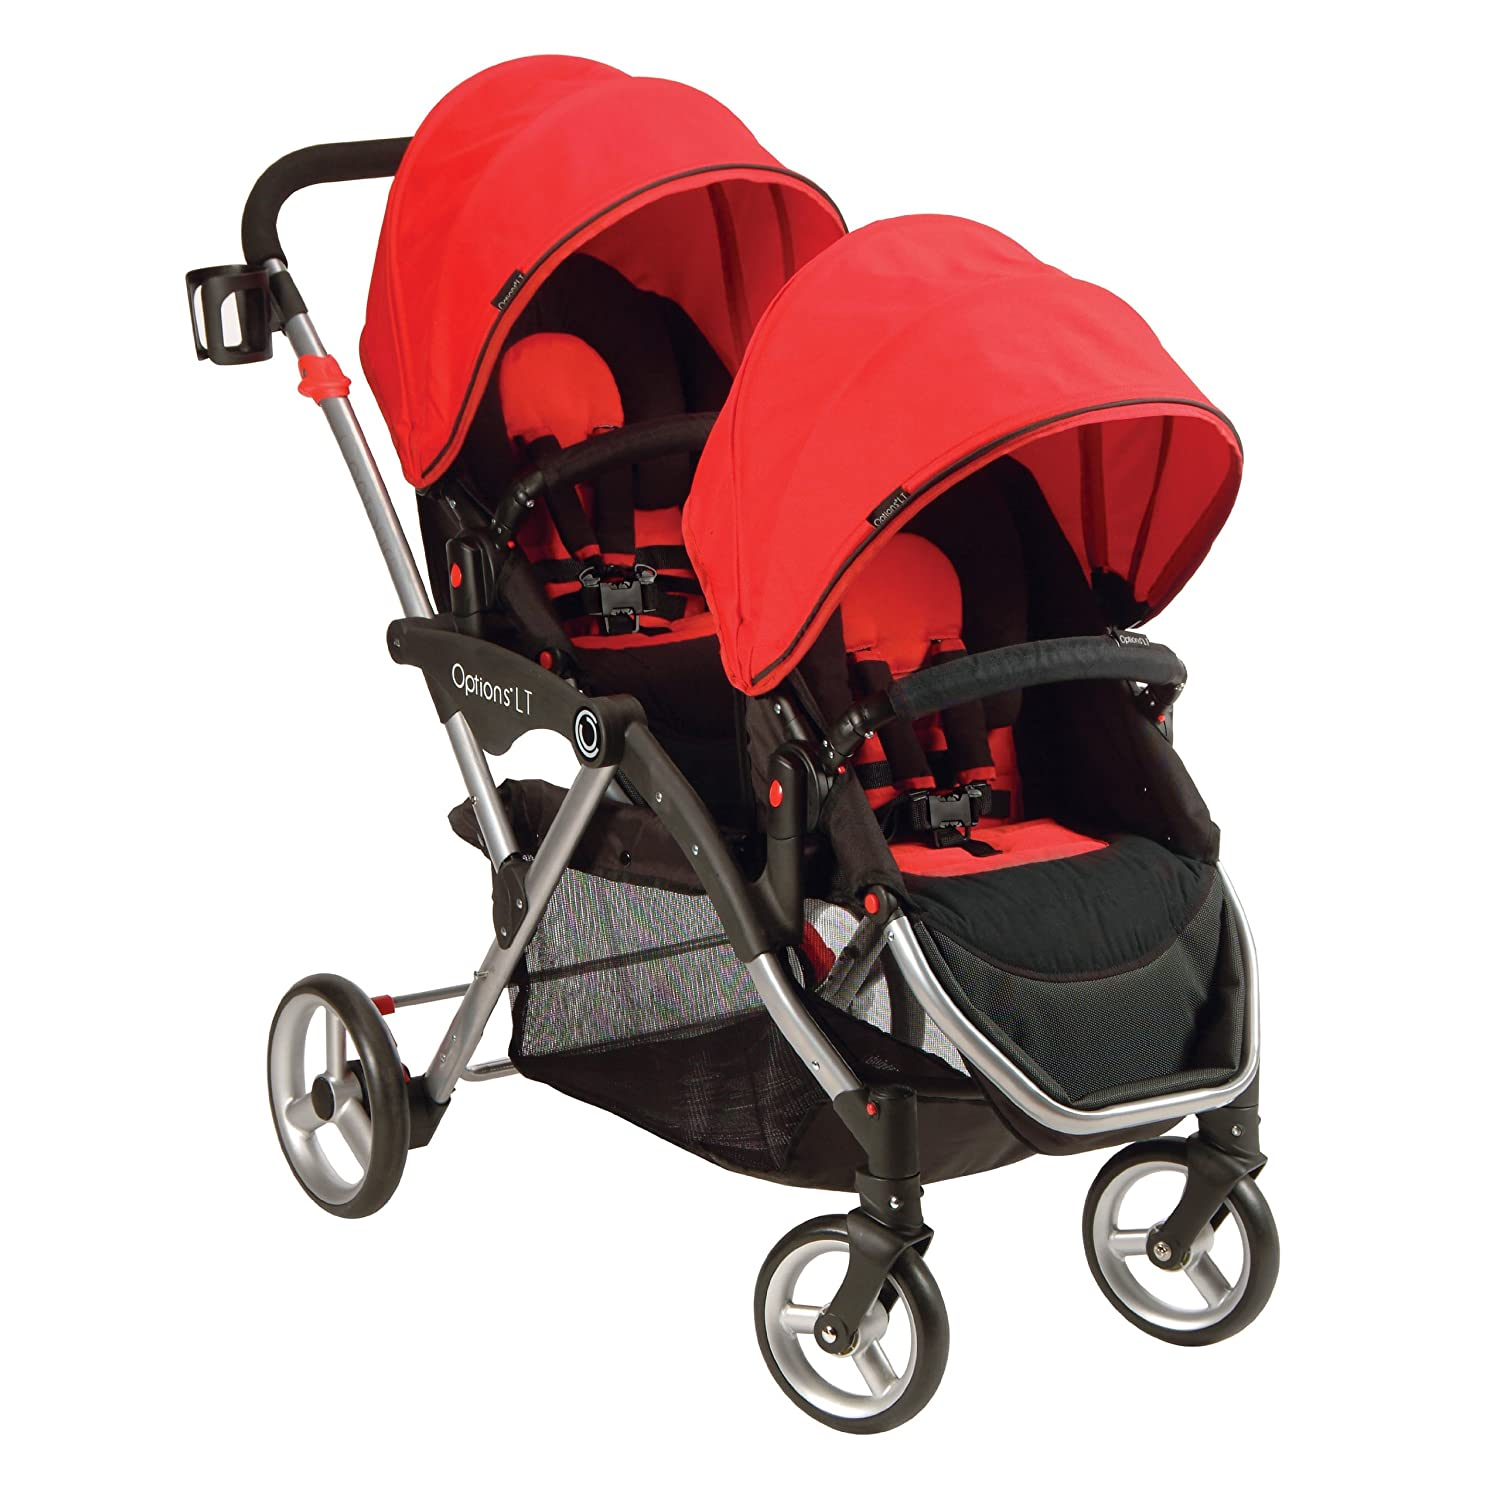 Kolcraft Countours Option Tandum Stroller in Ruby